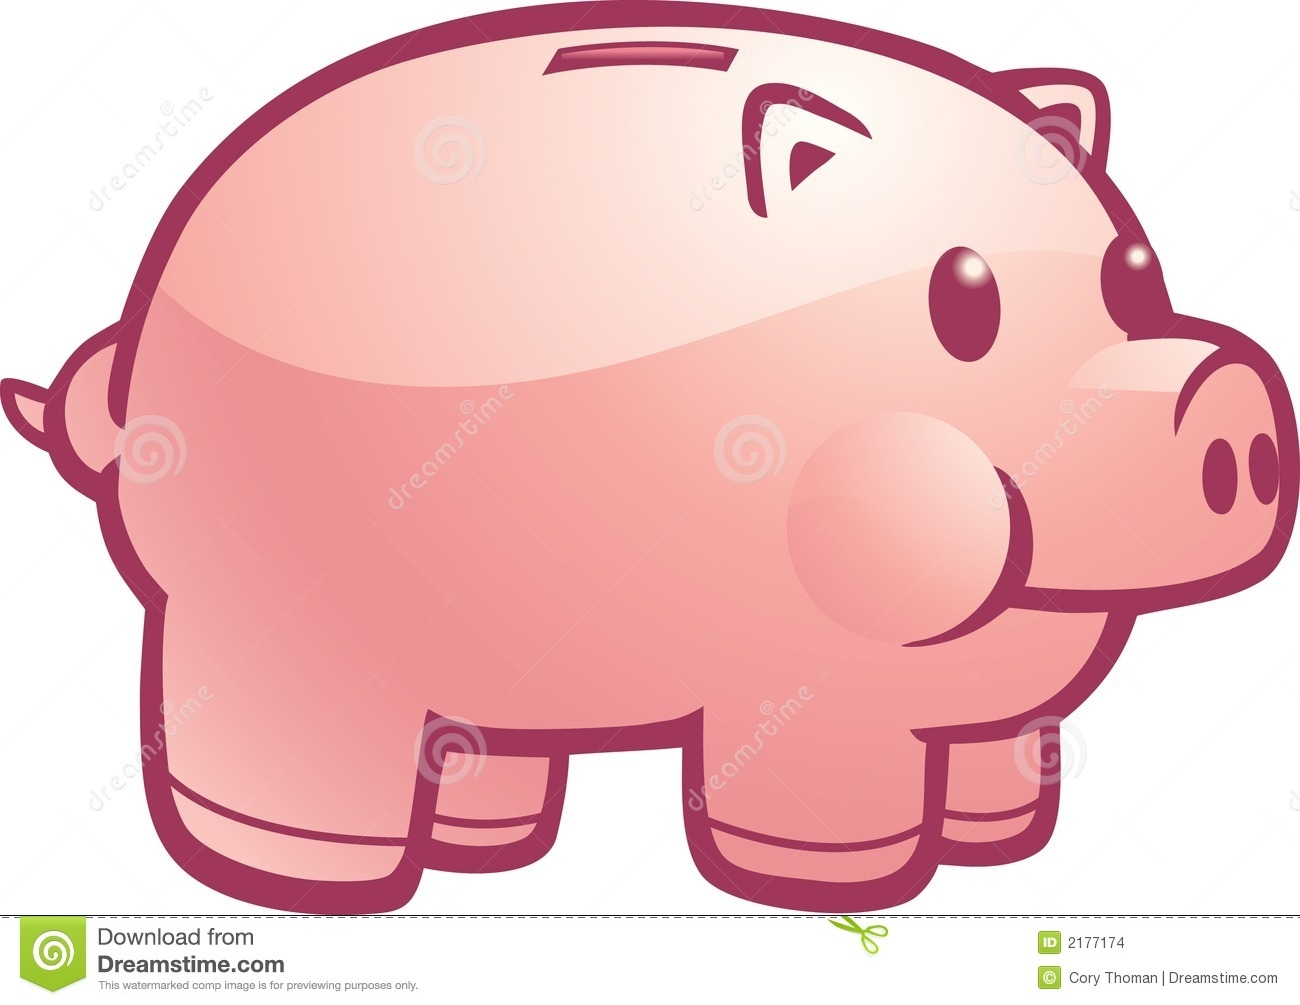 Awesome piggy collection digital. Bank clipart cute